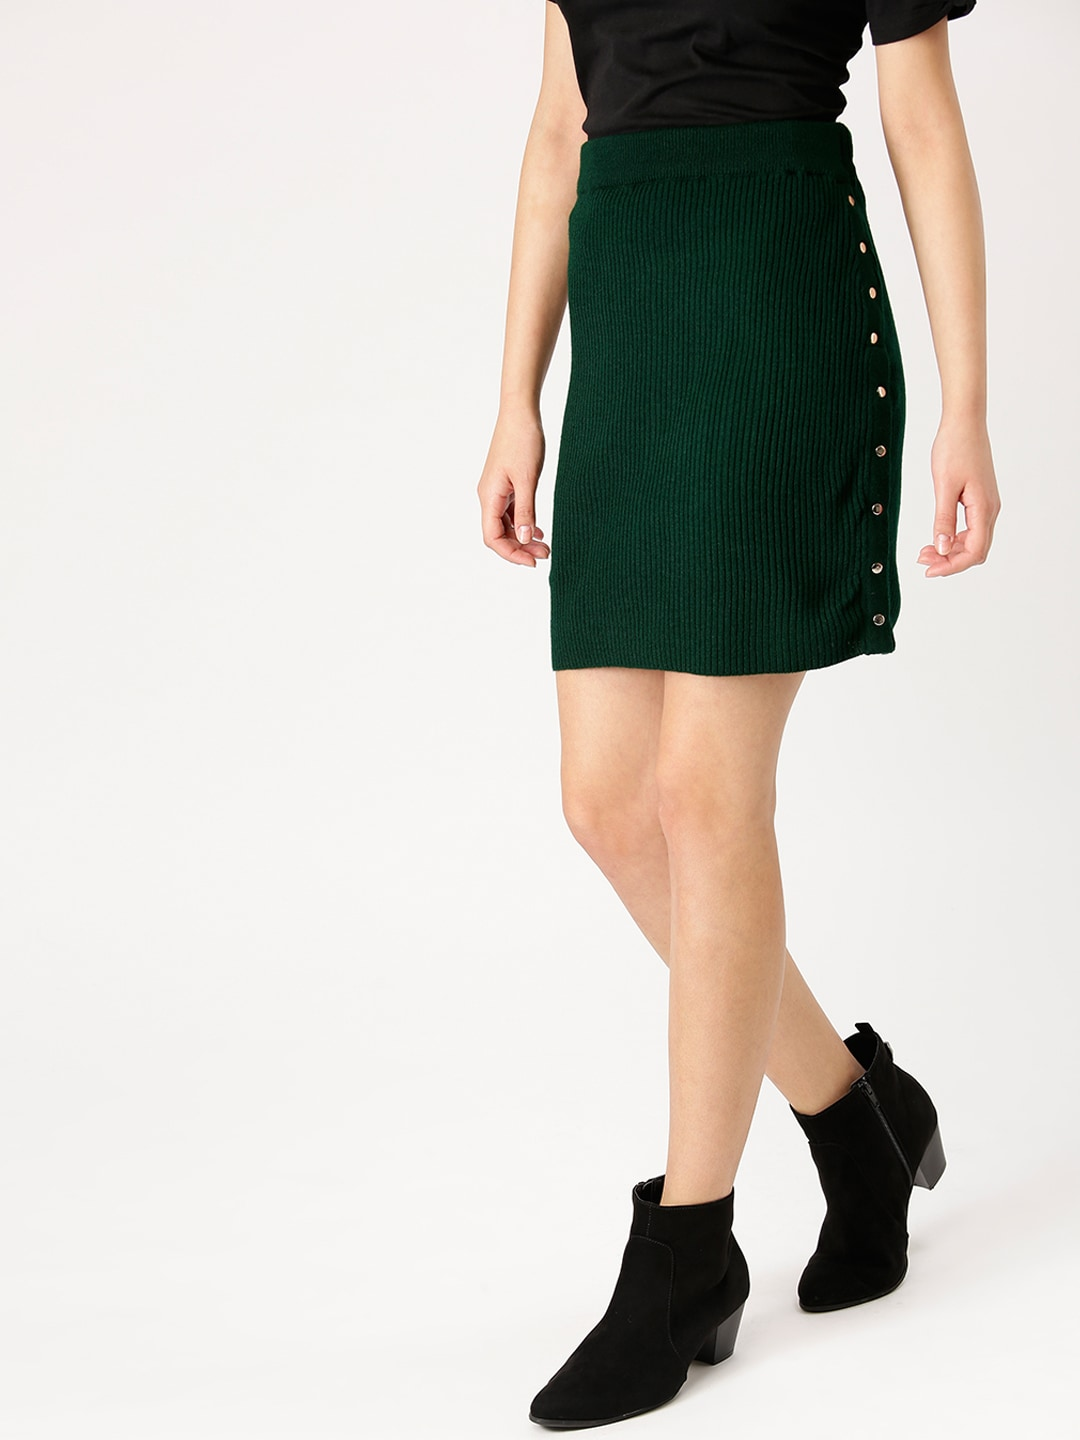 ee5faf21a30 Pencil Skirt - Buy Pencil Skirt Online - Myntra